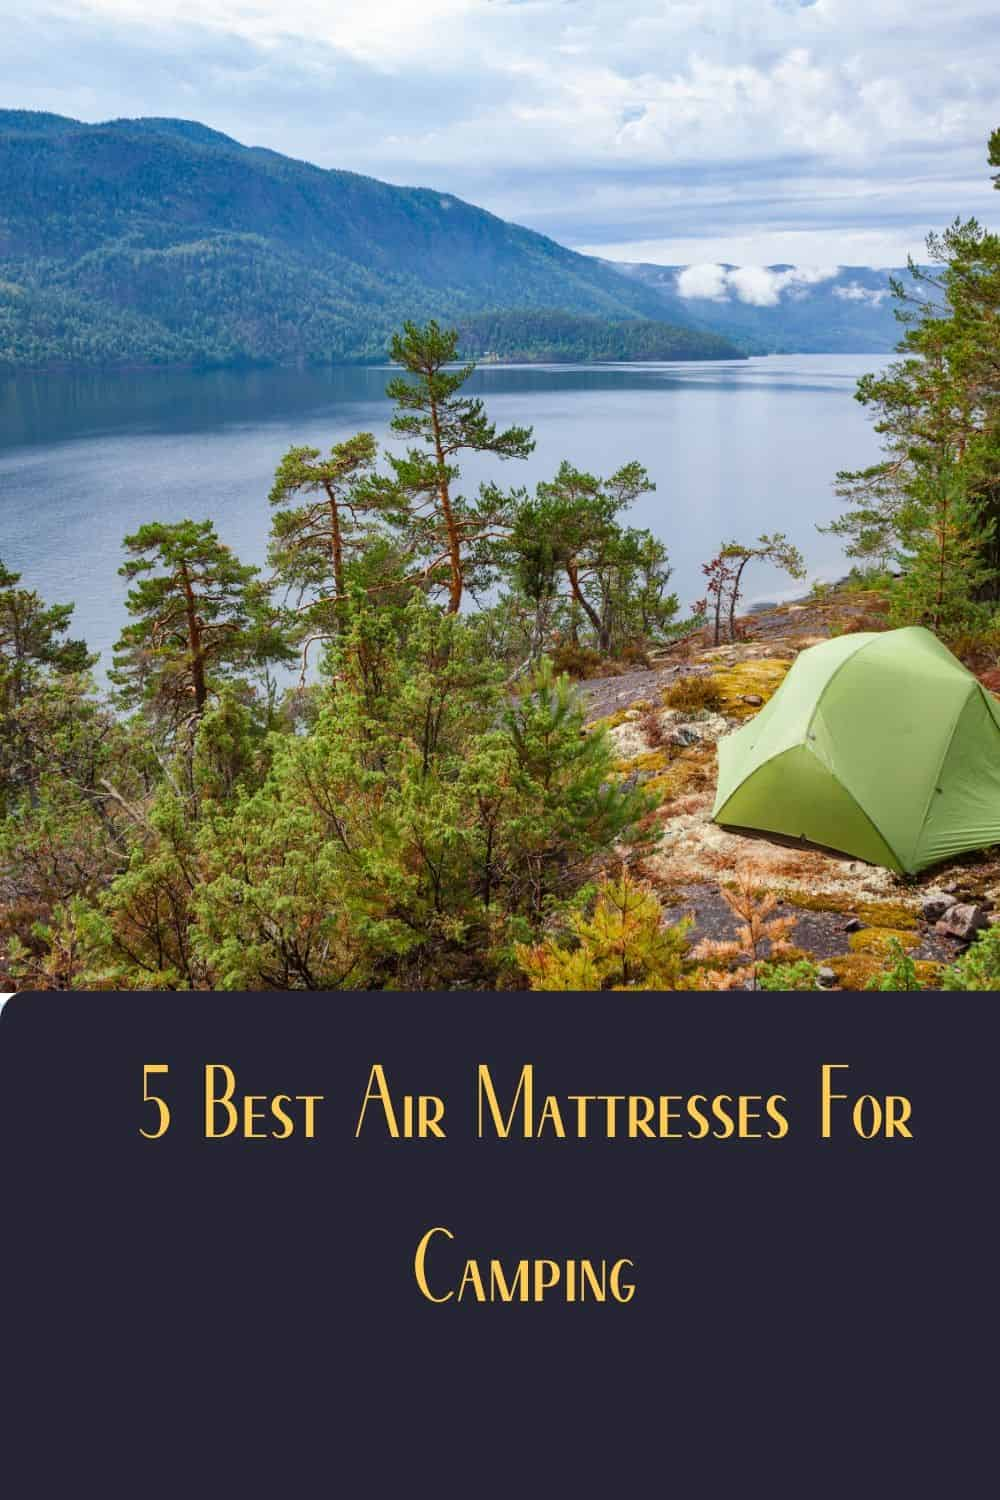 Pinterest image for 5 Best Air Mattresses For Camping